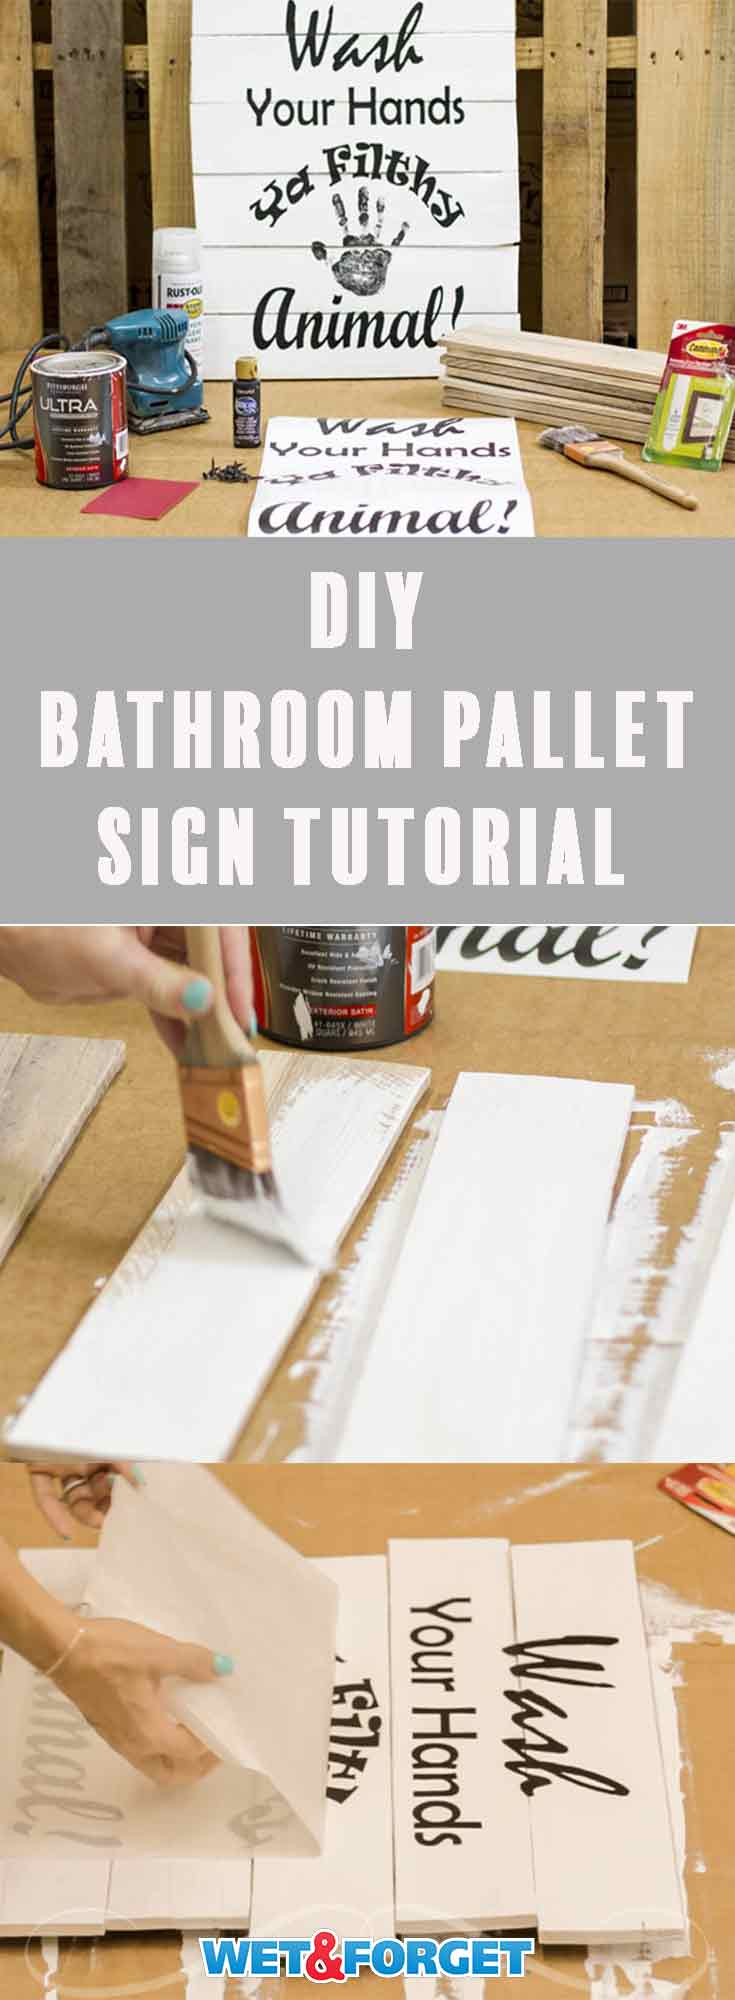 Learn how to make this nifty bathroom pallet sign with our quick tutorial! (We even included a free downloadable template!)